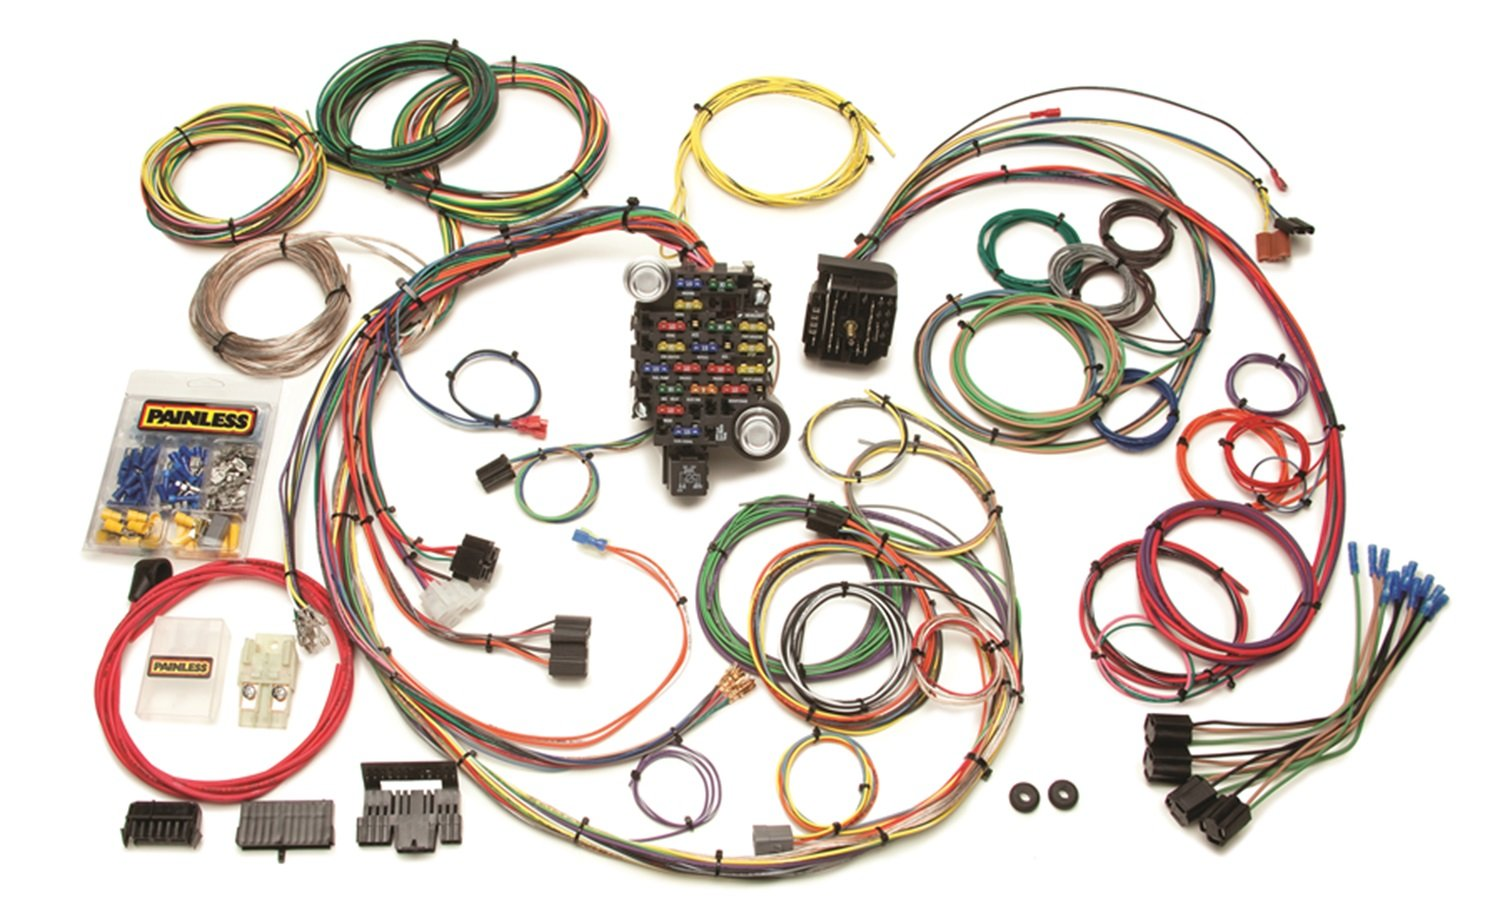 71RvMxx3qDL._SL1500_ amazon com painless 20102 custom wiring harness automotive automotive wiring harness at soozxer.org